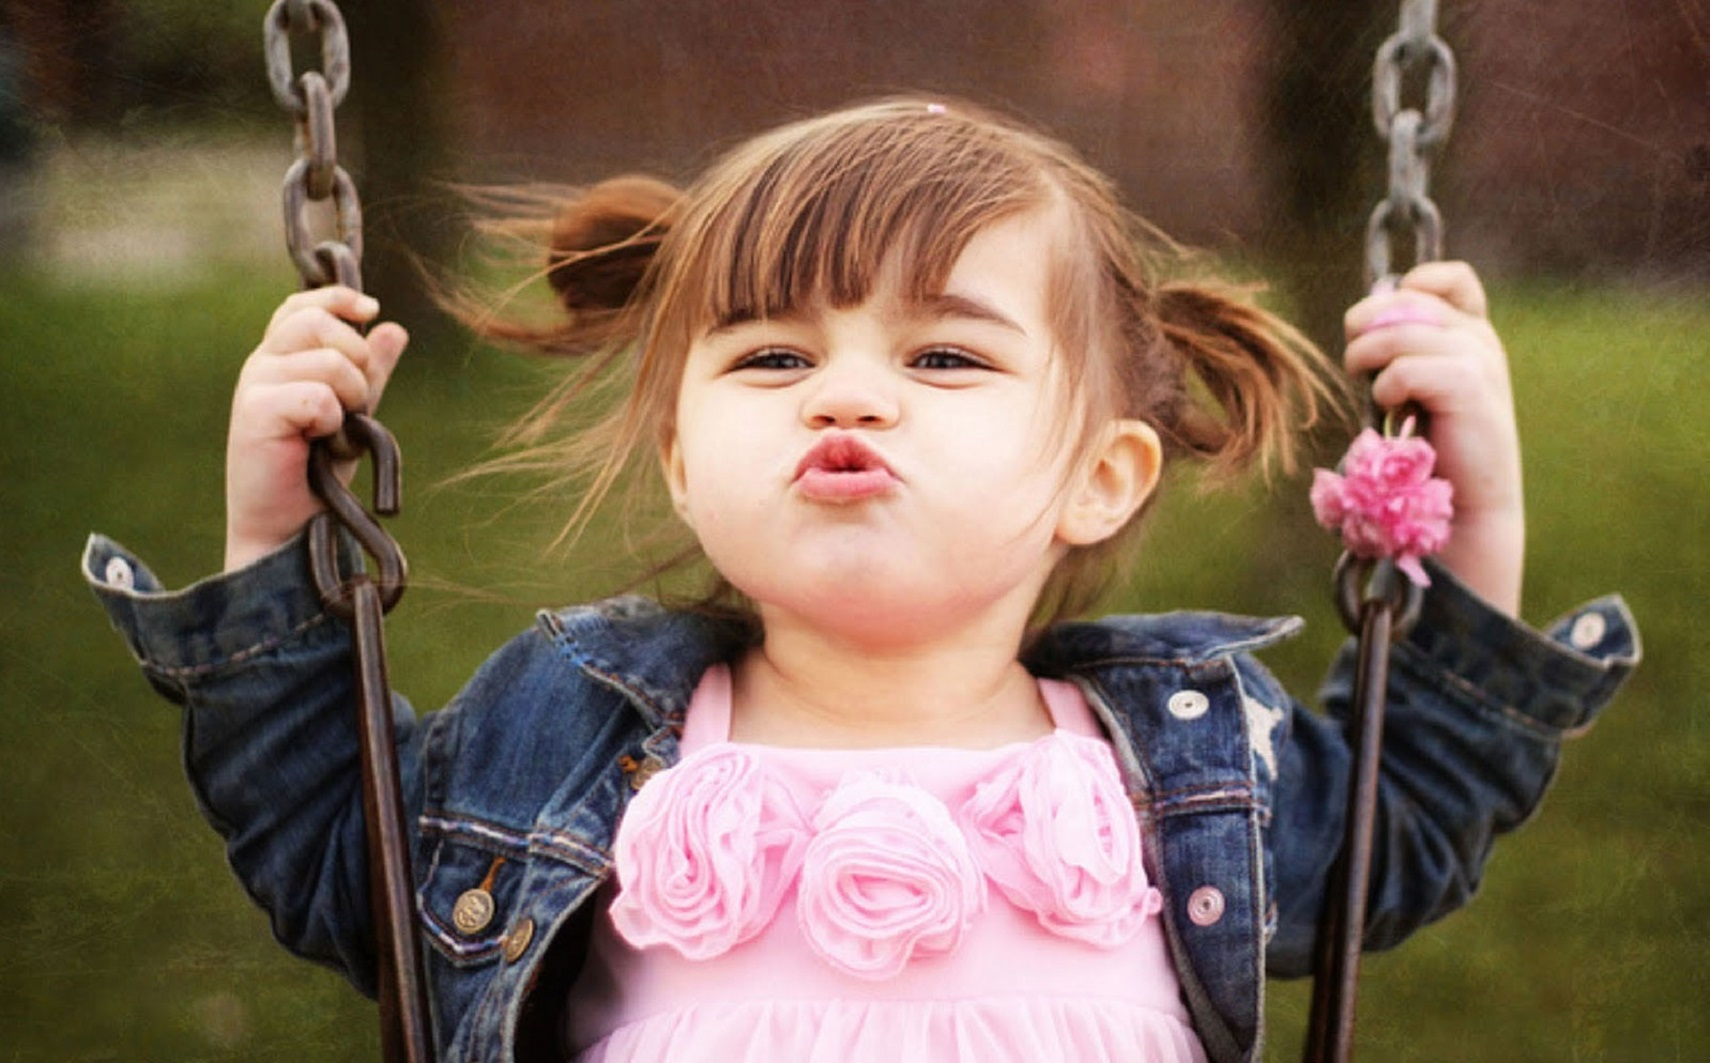 Cute baby wallpapers pictures photos hd images cute baby pics altavistaventures Images